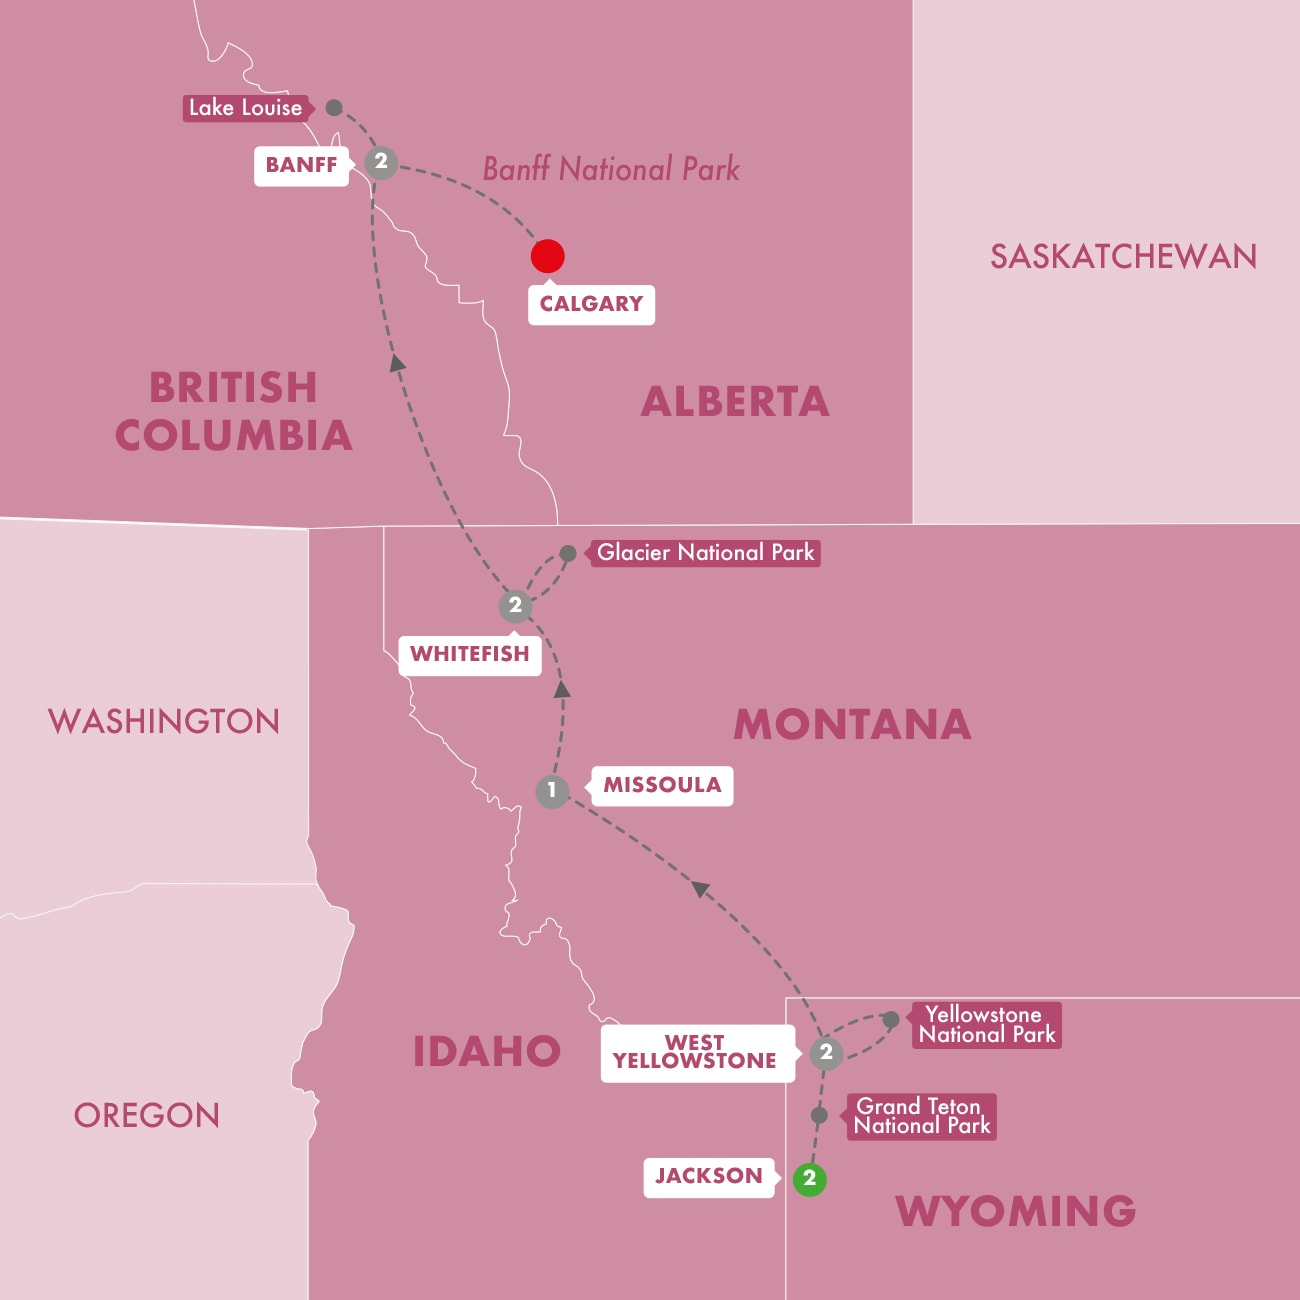 Iconic National Parks of the American and Canadian Rockies Start Jackson Map